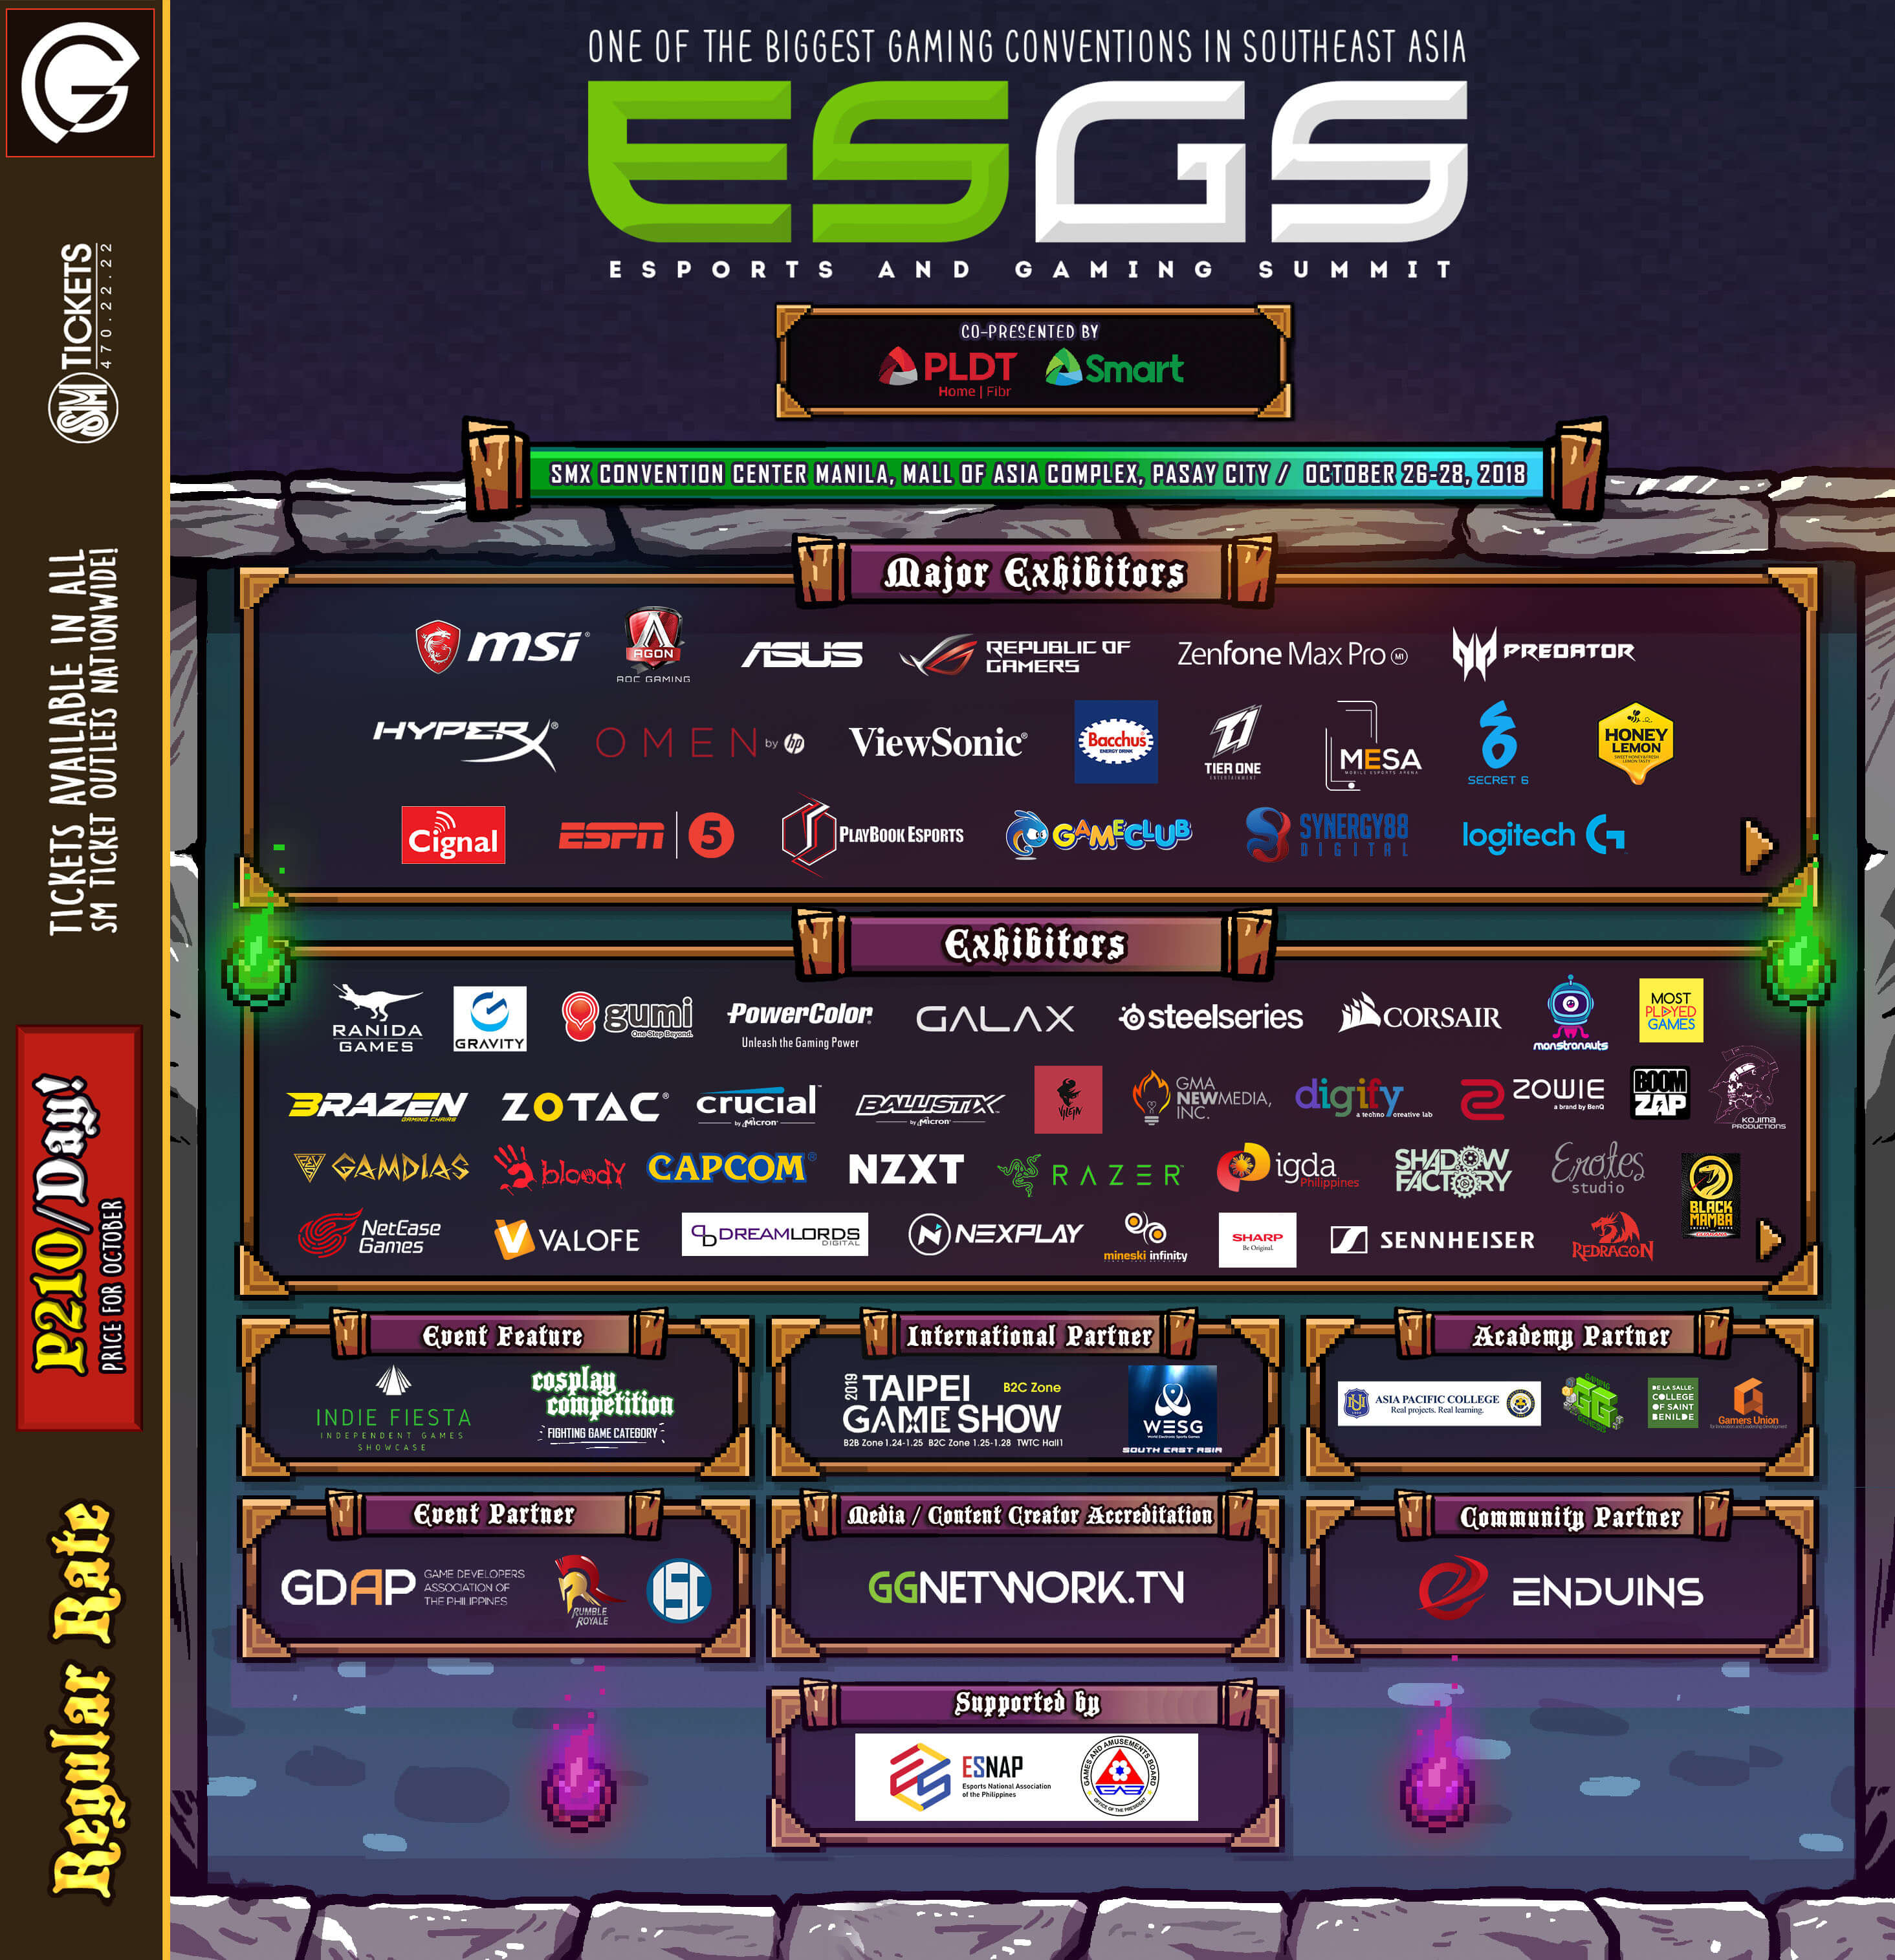 ESGS 2018 Brings You a Full Weekend of Action and Esports!